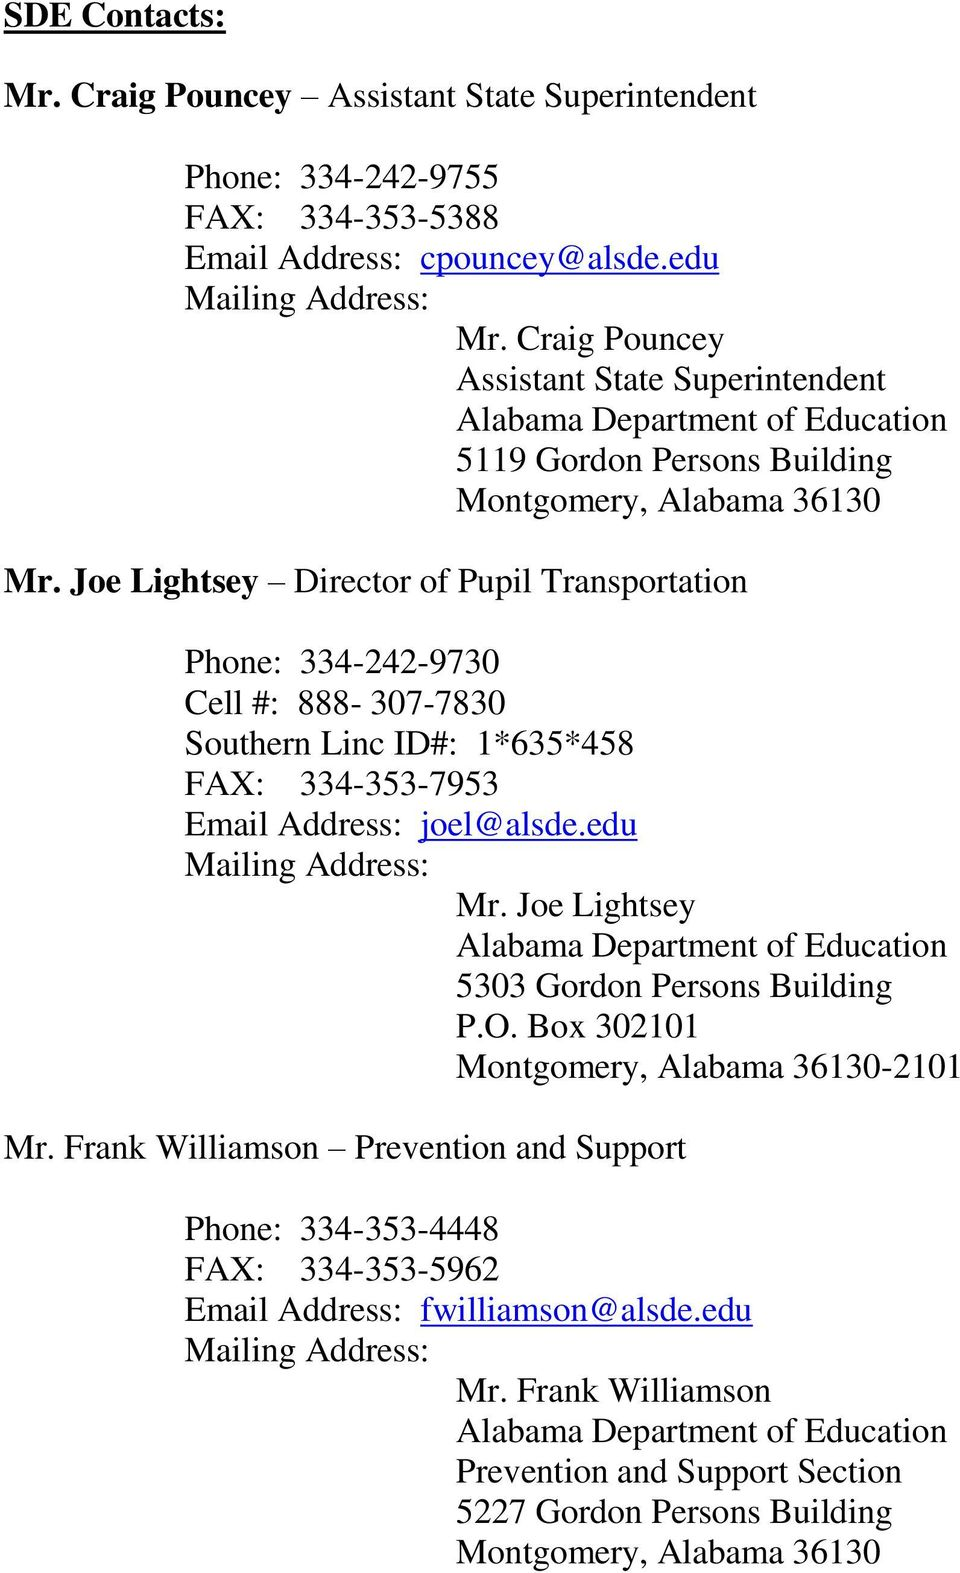 Joe Lightsey Director of Pupil Transportation Phone: 4-4-970 Cell #: 888-07-780 Southern Linc ID#: 1*65*458 FAX: 4-5-795 Email Address: joel@alsde.edu Mailing Address: Mr.